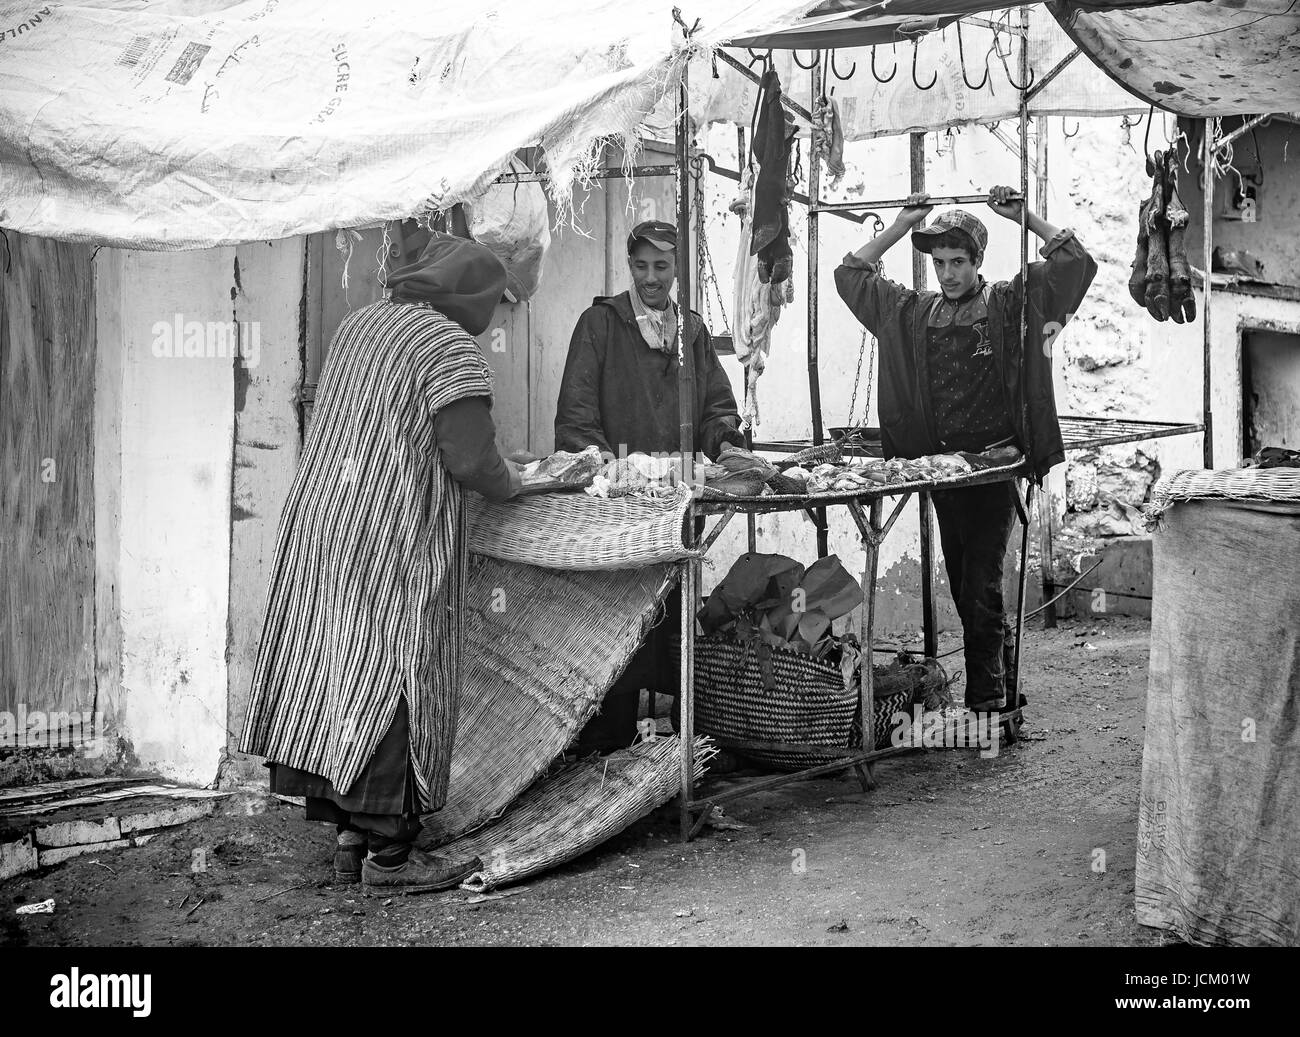 Butcher stand in a traditional countryside market in Morocco - Stock Image